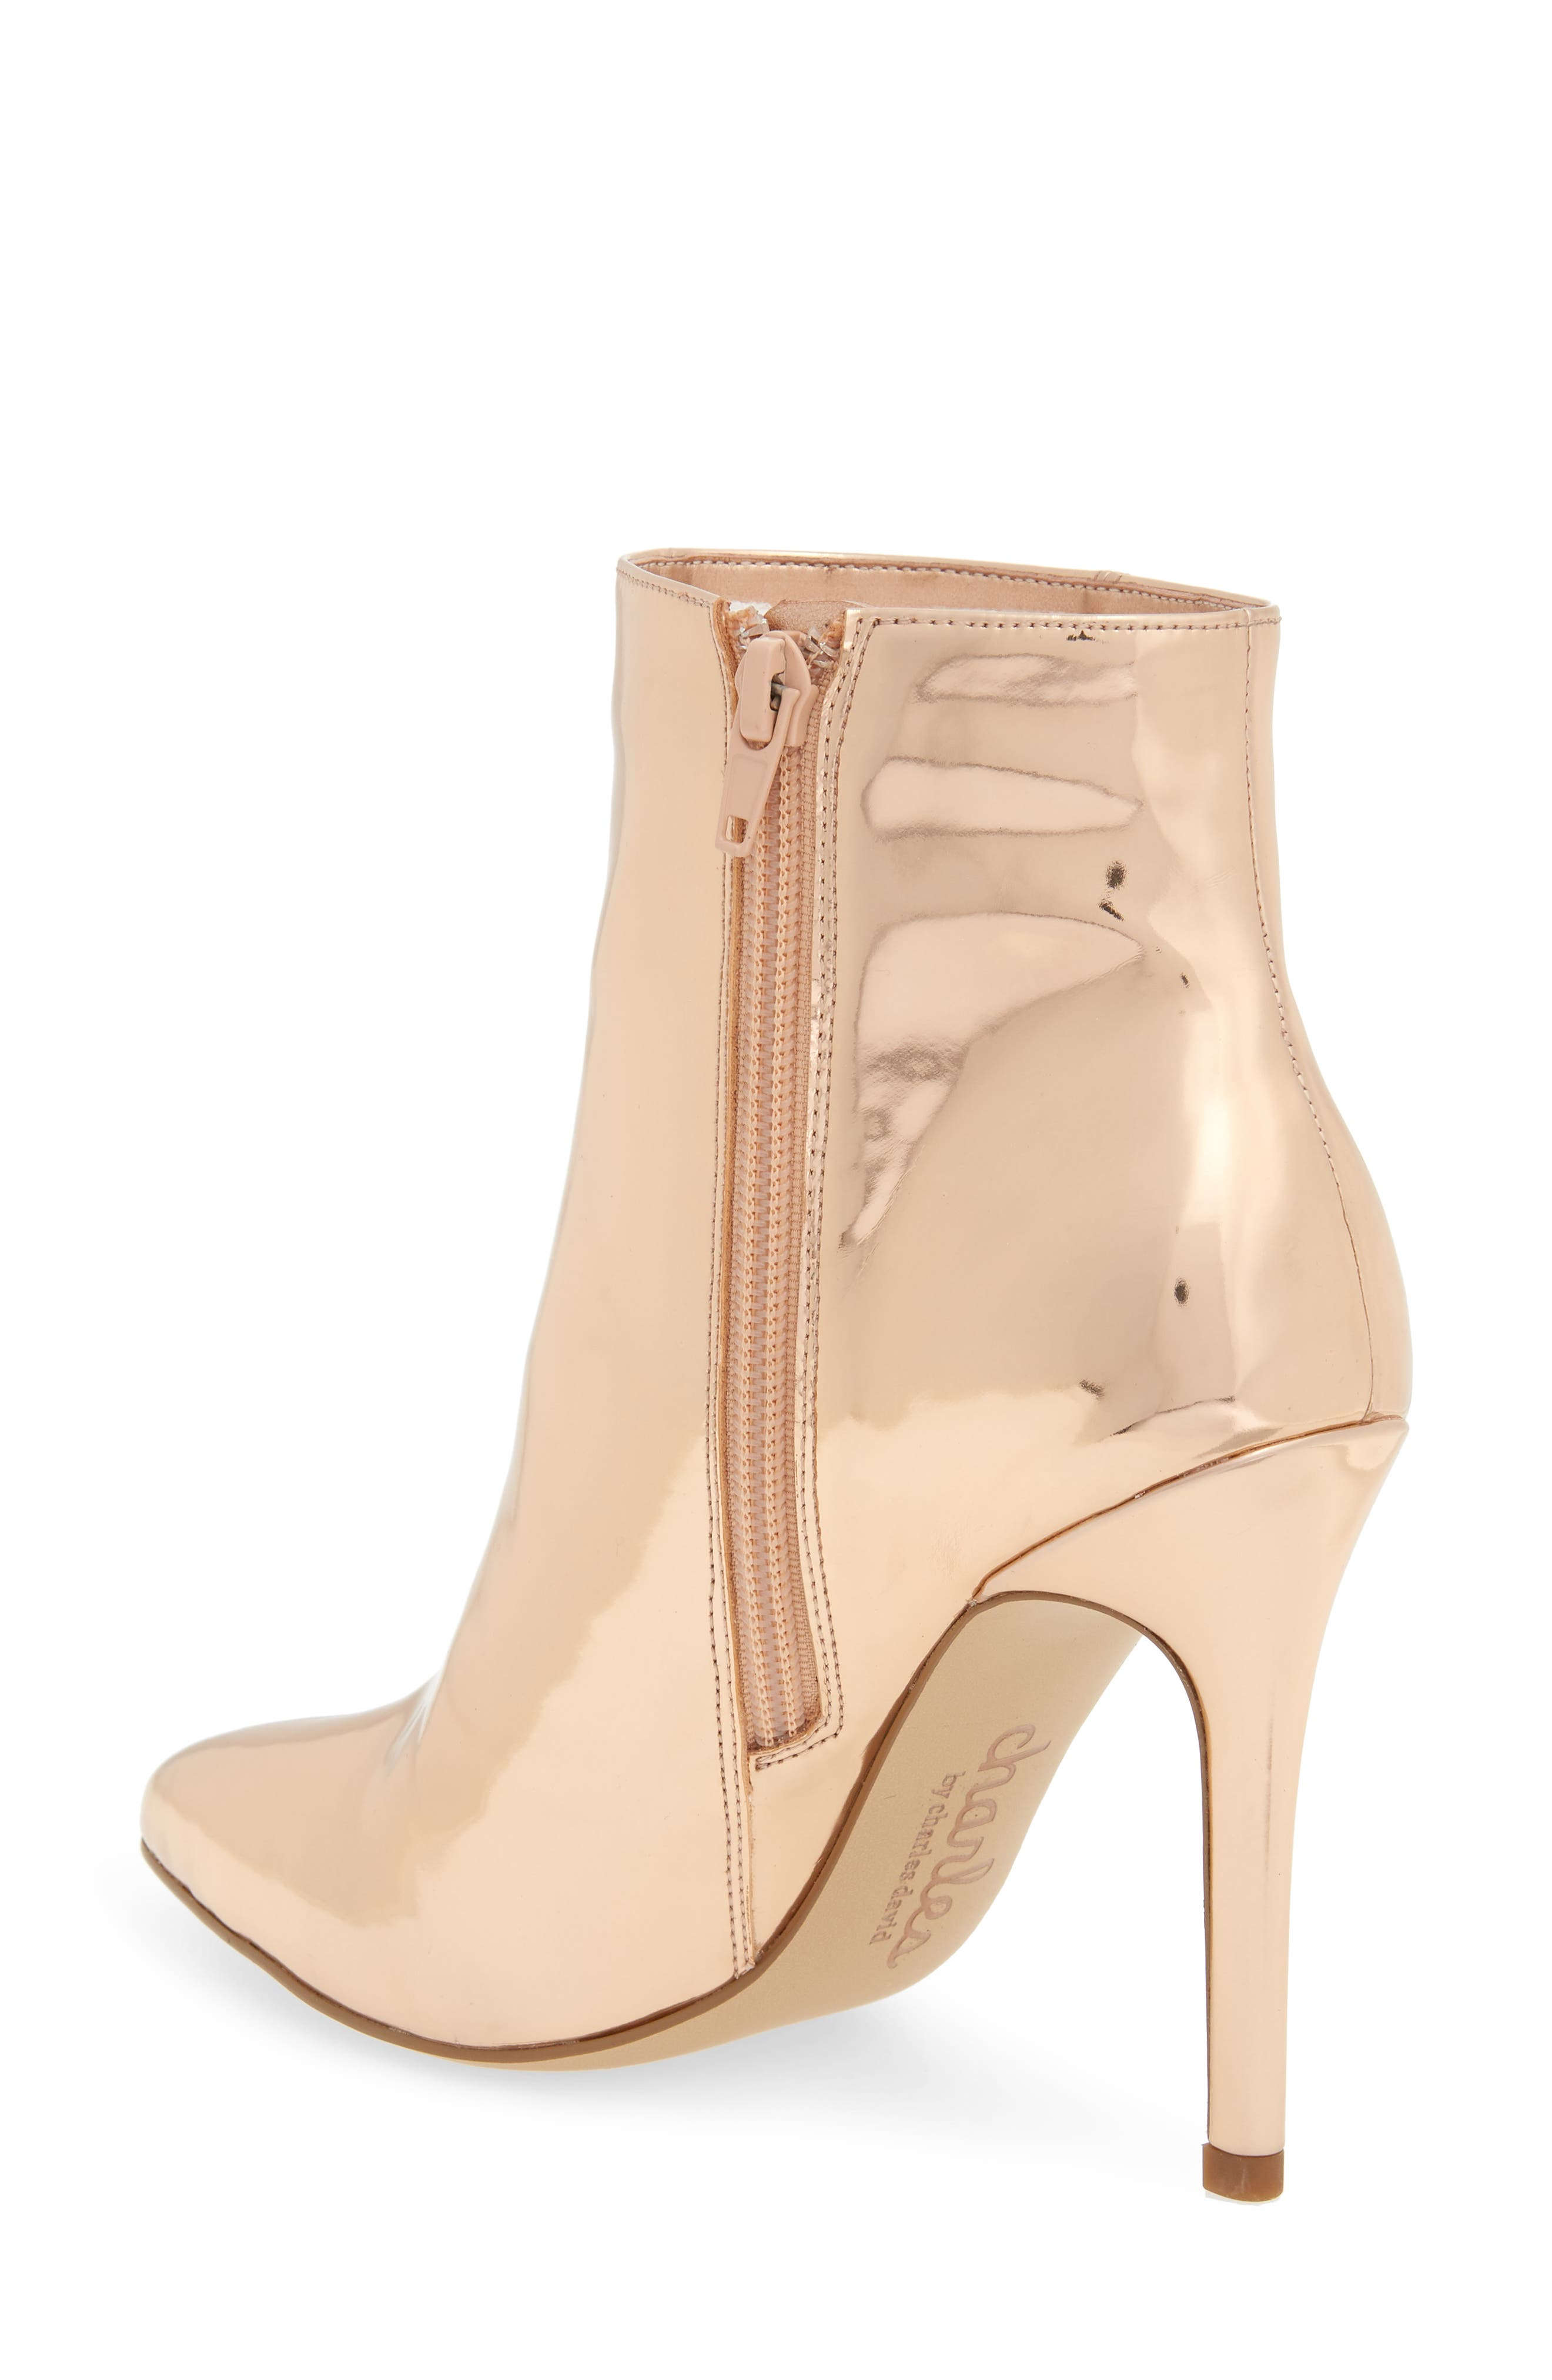 CHARLES BY CHARLES DAVID, Delicious Bootie, Alternate thumbnail 2, color, ROSE GOLD LEATHER